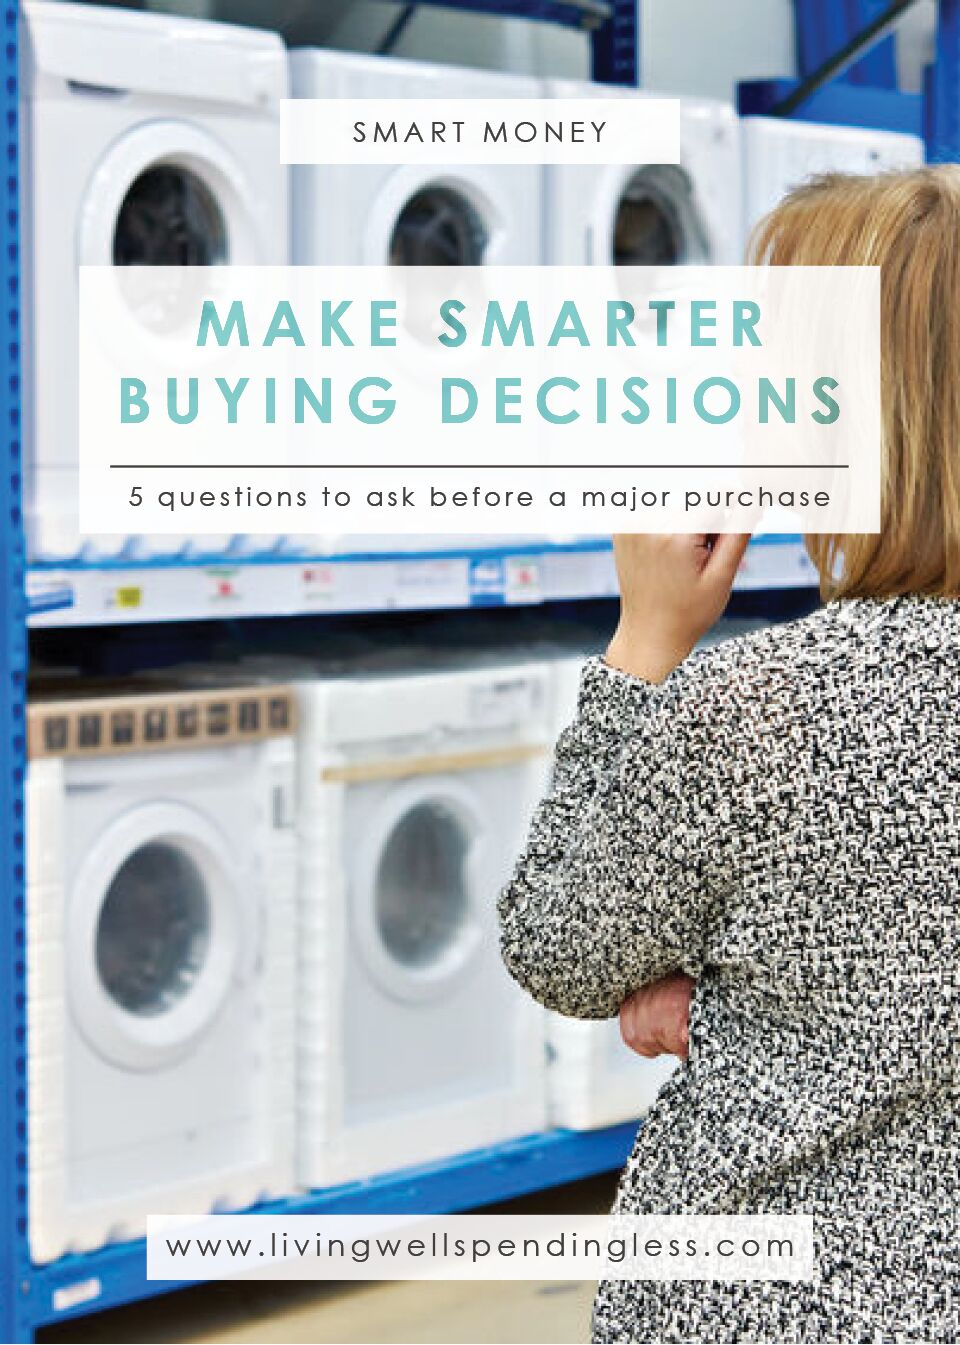 5 Questions to Ask Before a Major Purchase | Budgeting 101 | Money Saving Tips | Saving & Investing | Smart Money